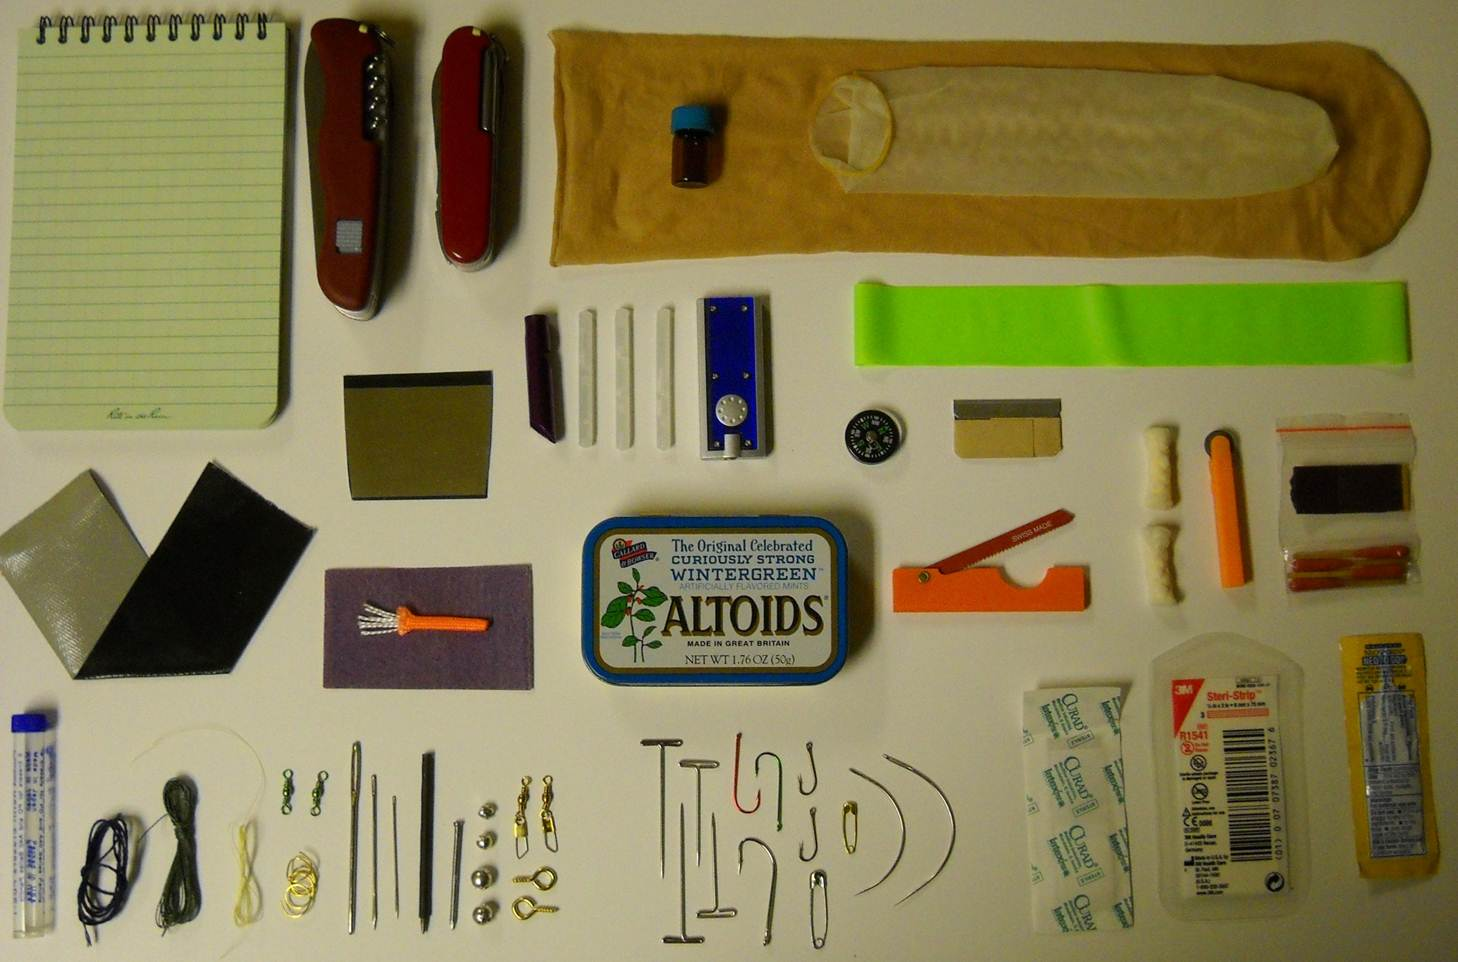 Uncle AZ's Altoids Survival Kit